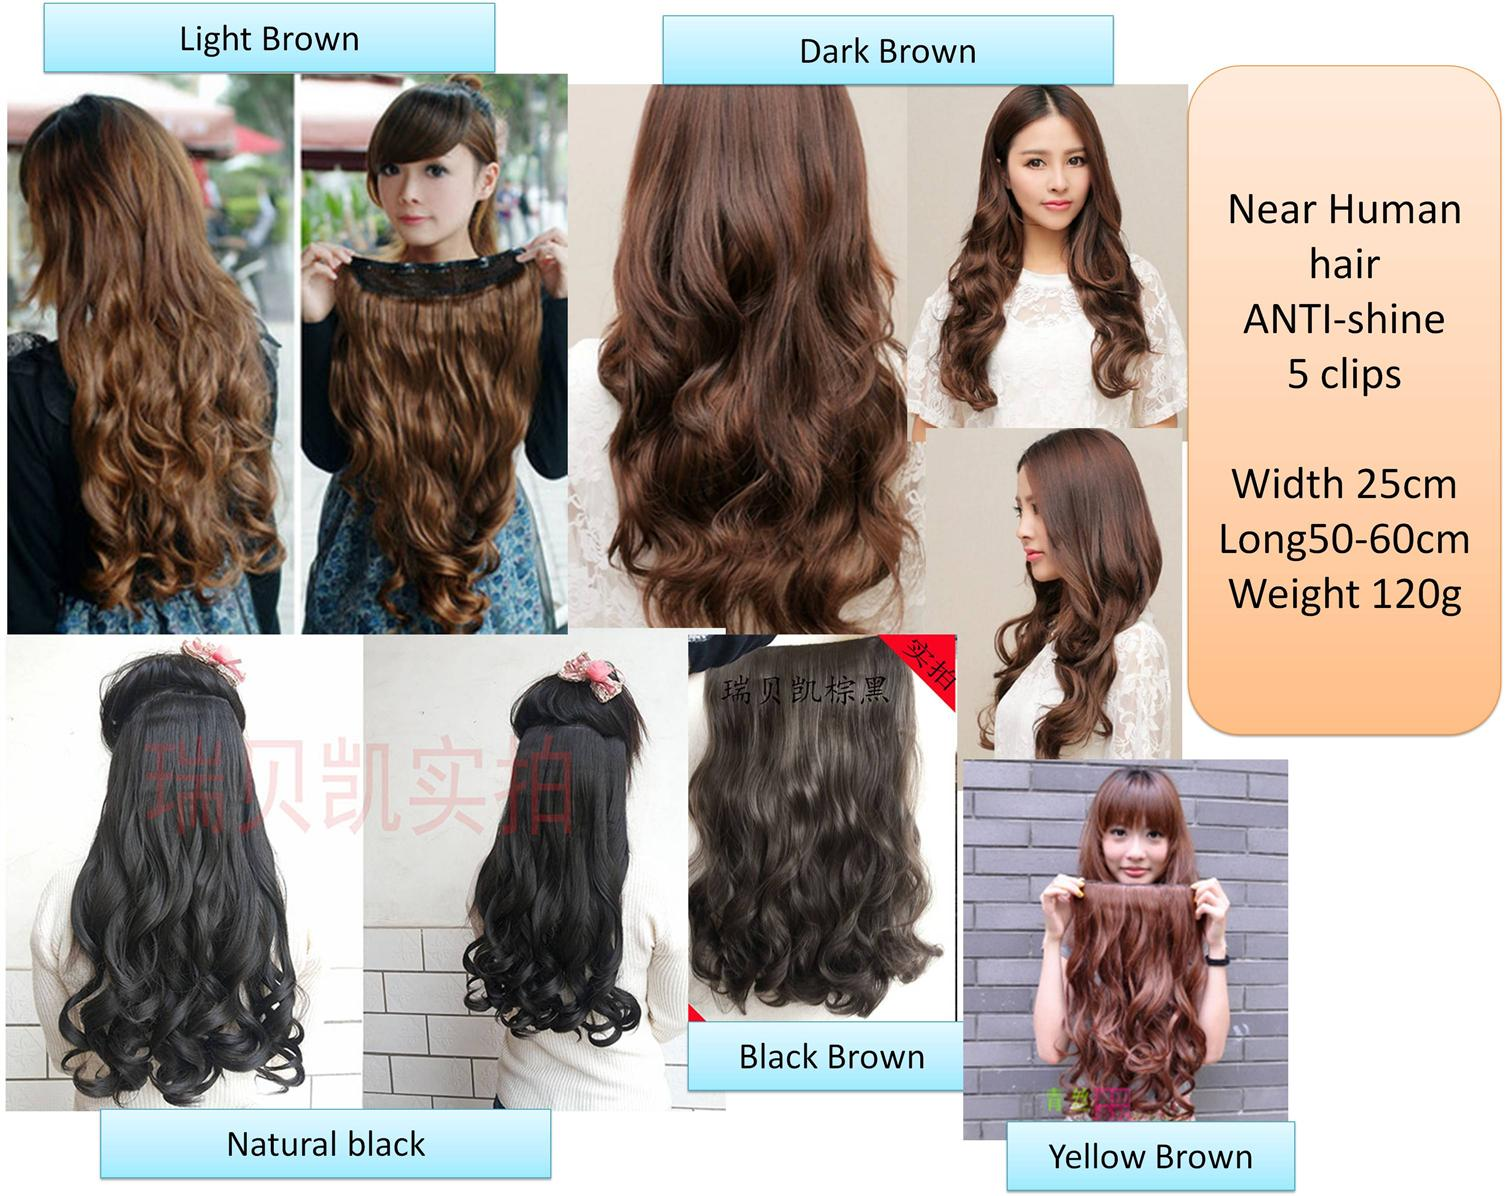 Wig Extension*z7 ready stock-rambut palsu